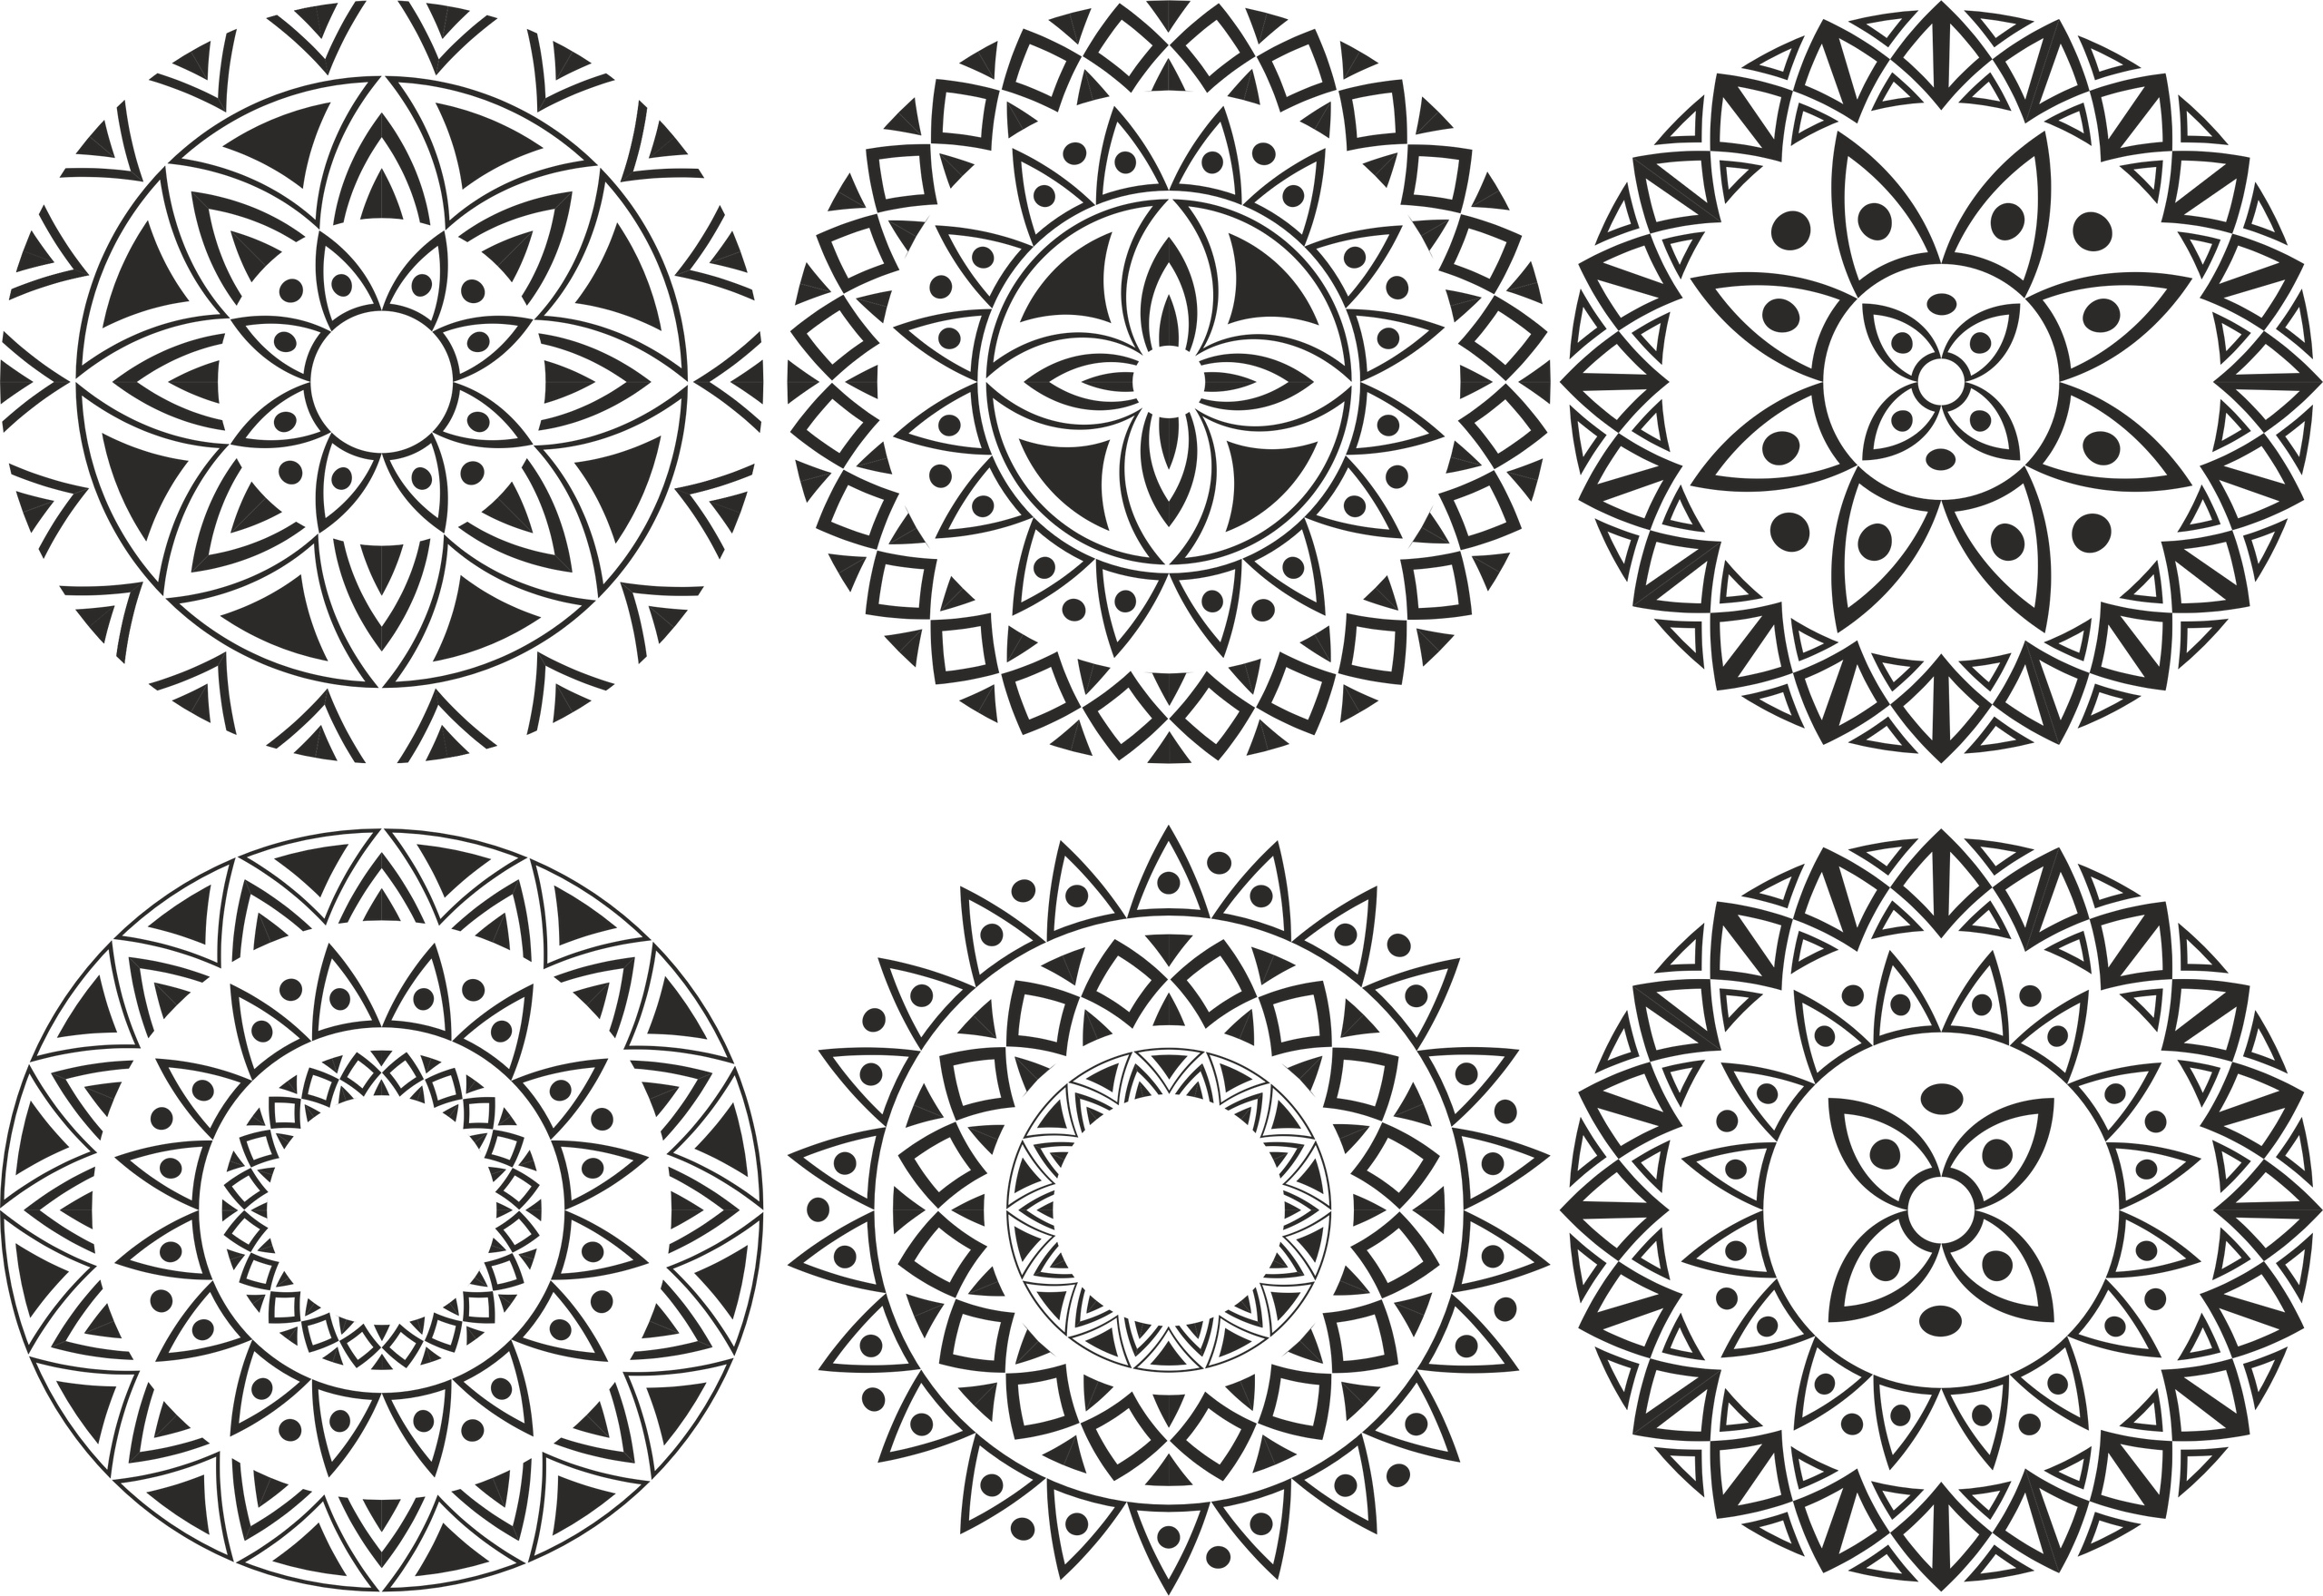 ornament circle vectors set free vector cdr download 3axis co ornament circle vectors set free vector